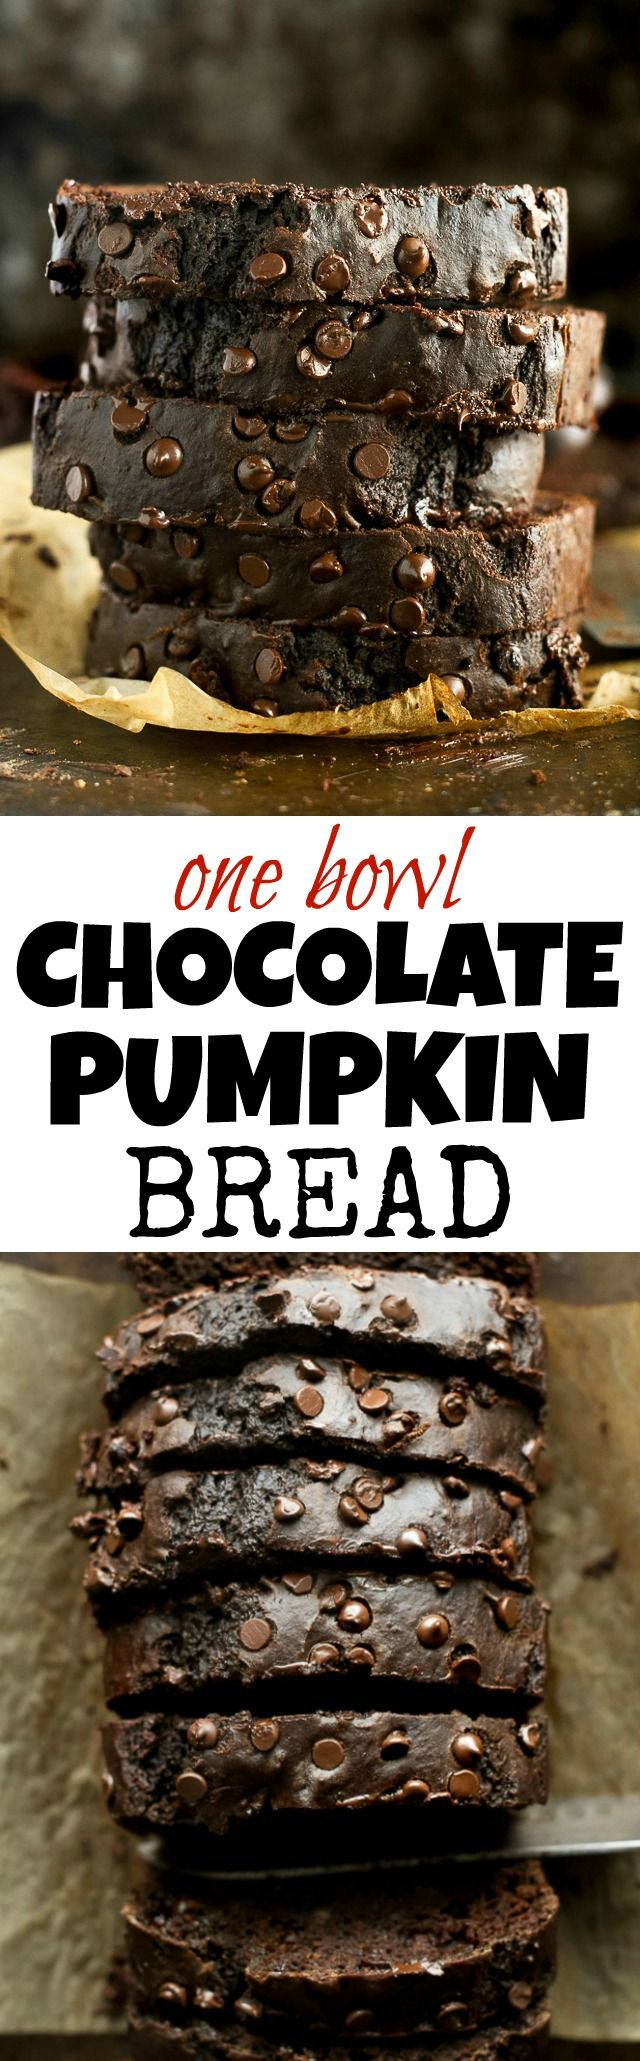 Chocolate Pumpkin Bread made in ONE BOWL, and so tender and flavourful that you'd never guess it's naturally sweetened and made without butter or oil! | runningwithspoons.com